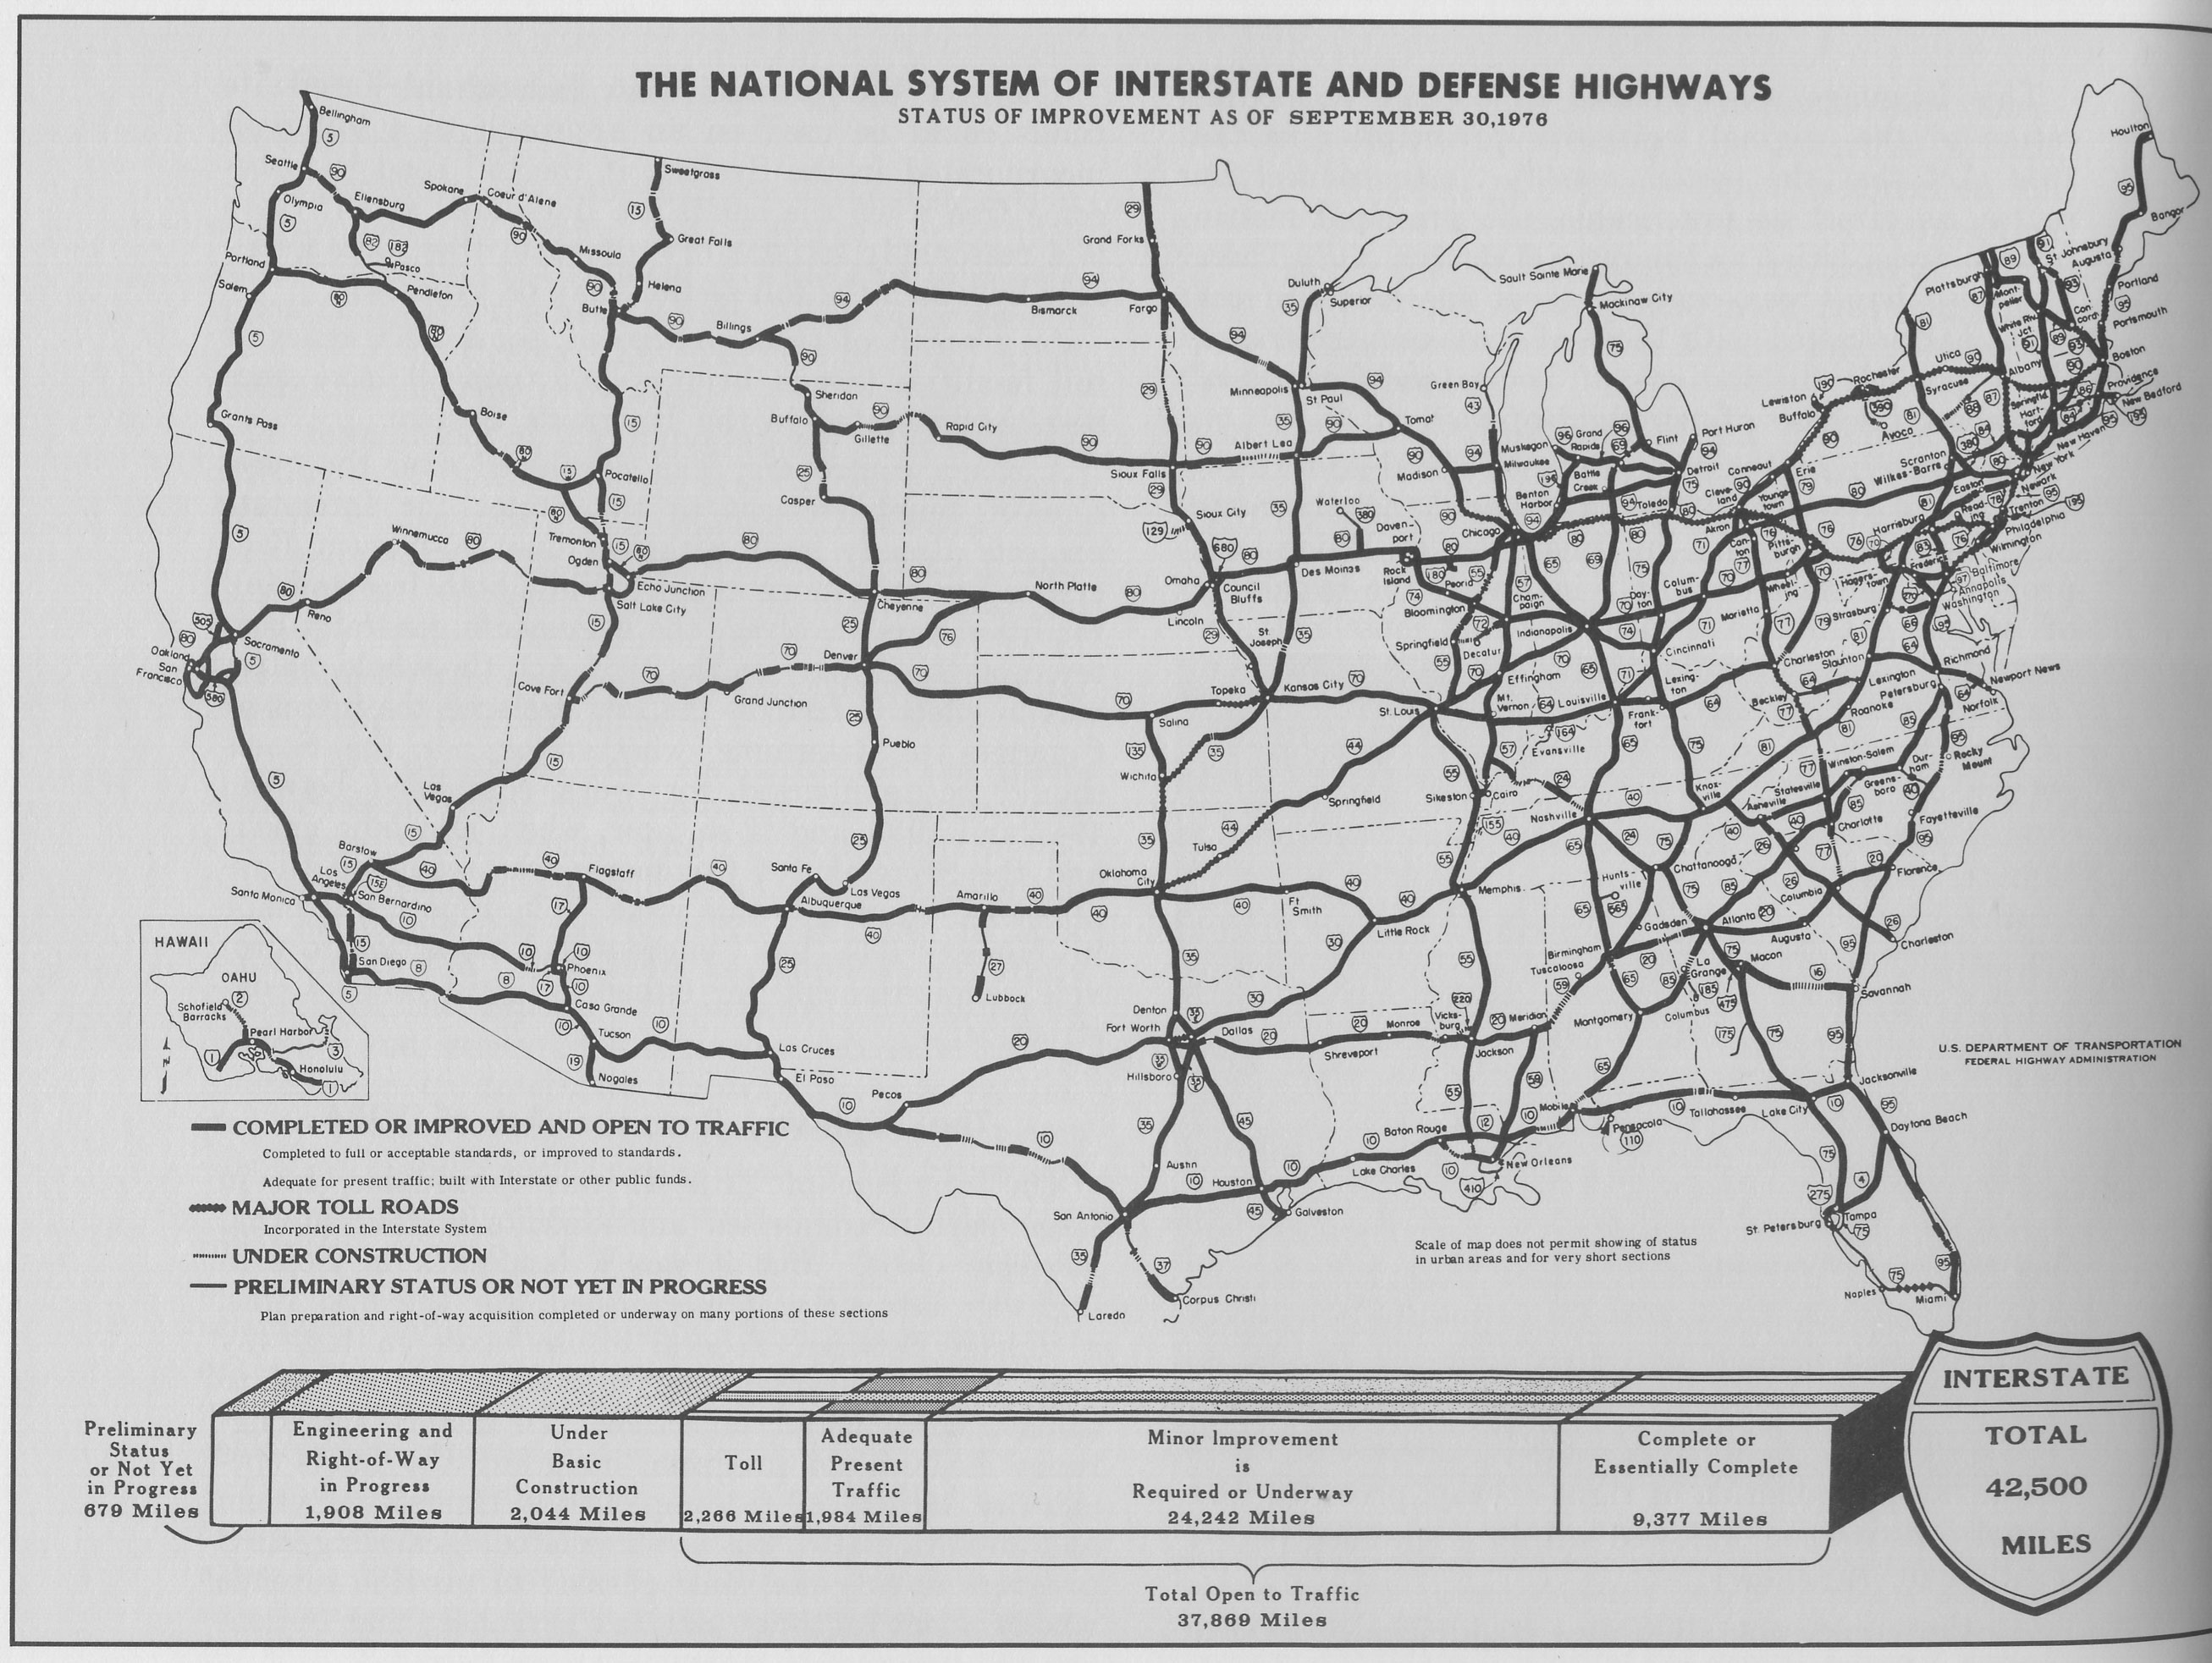 FileInterstate Highway Status September Jpg Wikimedia - Map of us with highways